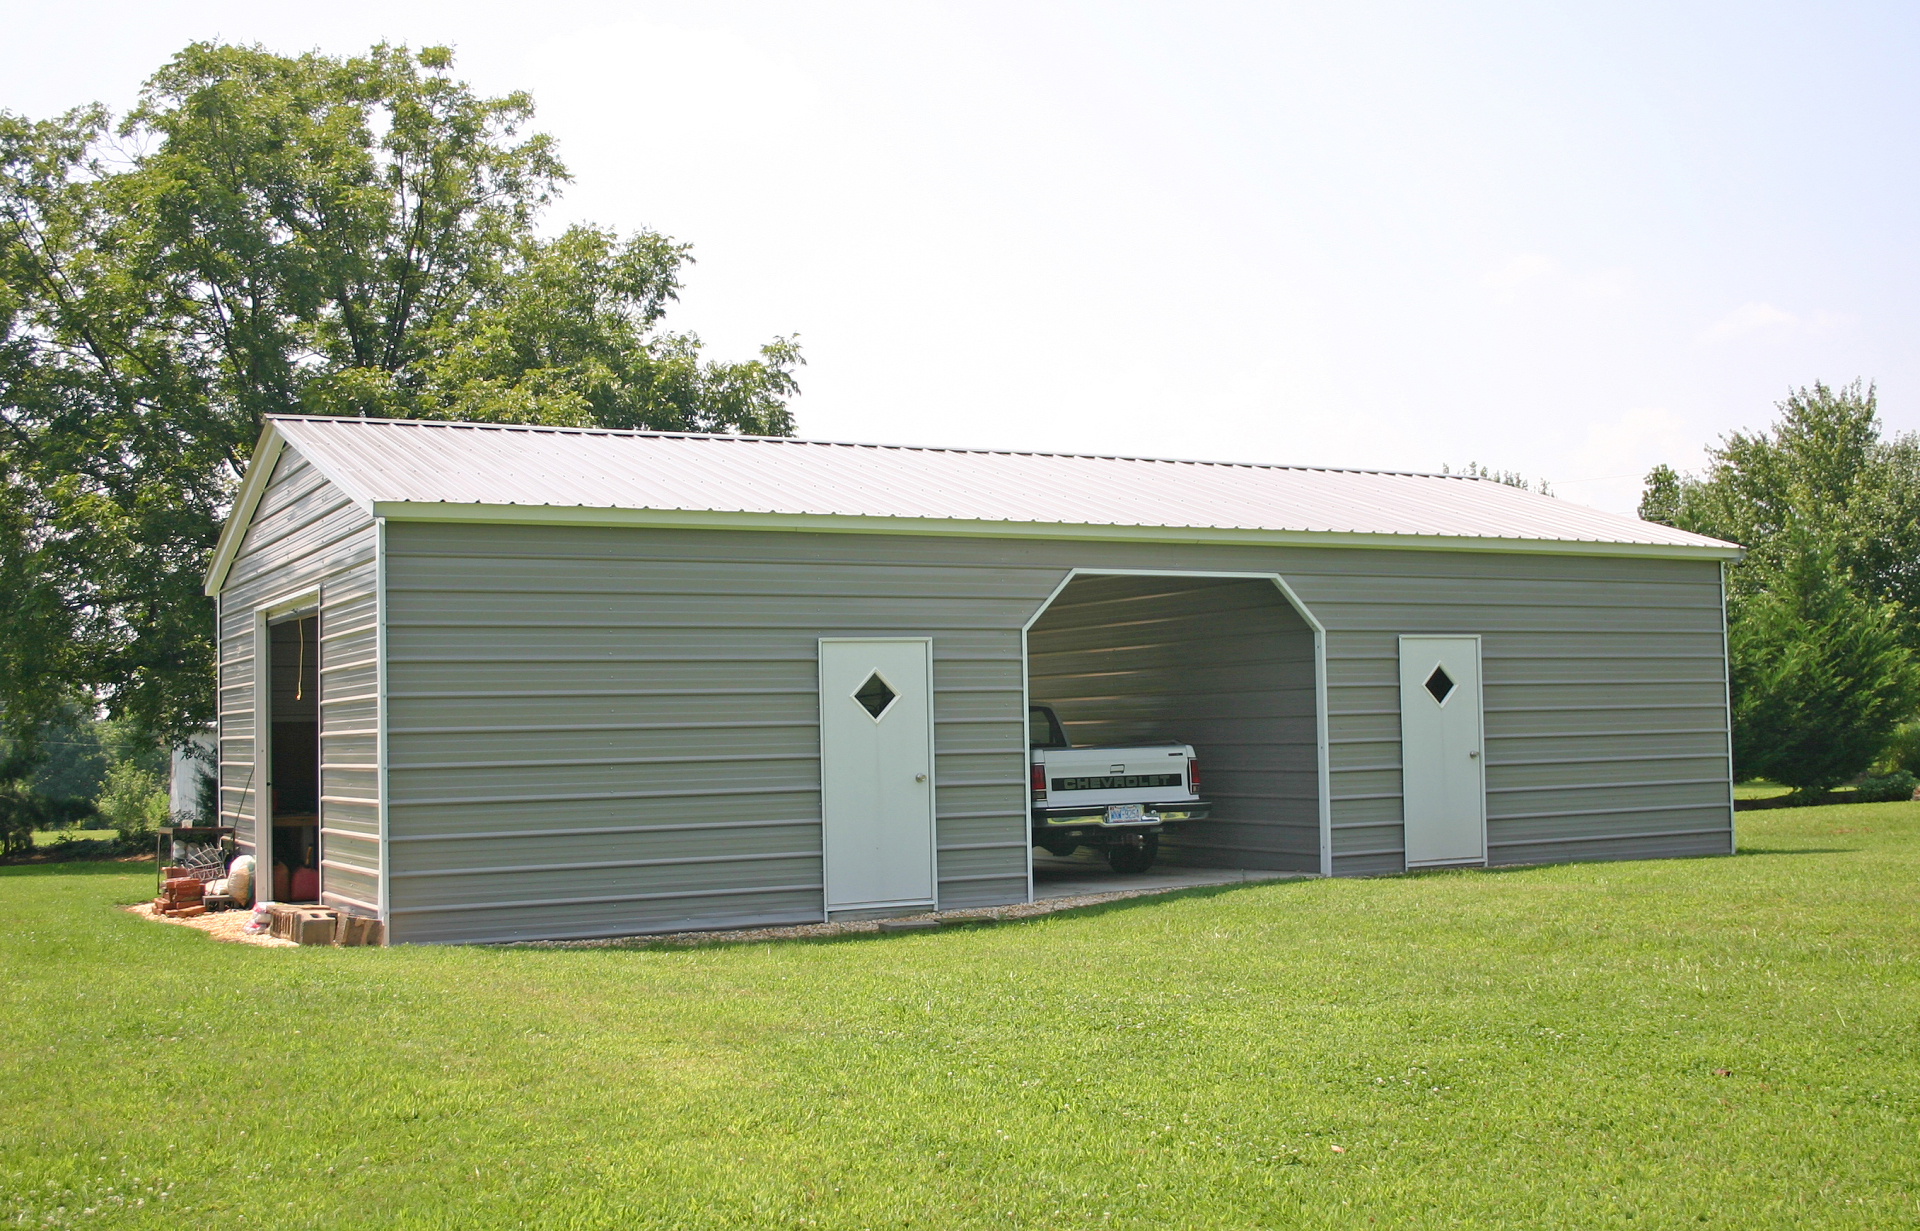 Steel Carports Texas Tx Make Your Own Beautiful  HD Wallpapers, Images Over 1000+ [ralydesign.ml]